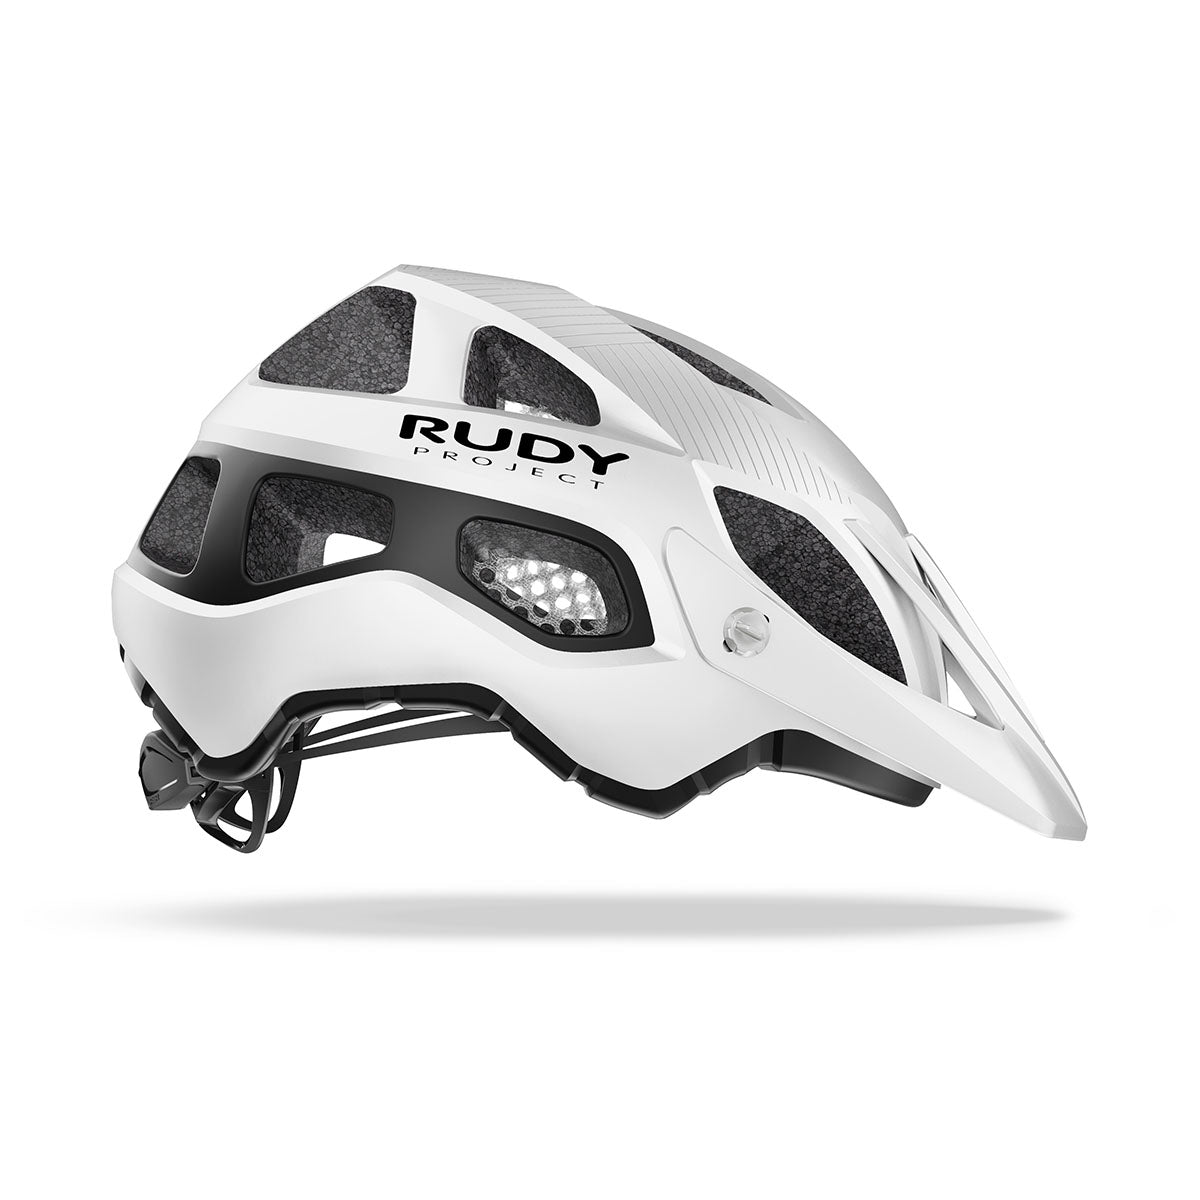 Rudy Project - Protera - color: White Black matte - photo angle: Side Variant Hover Image